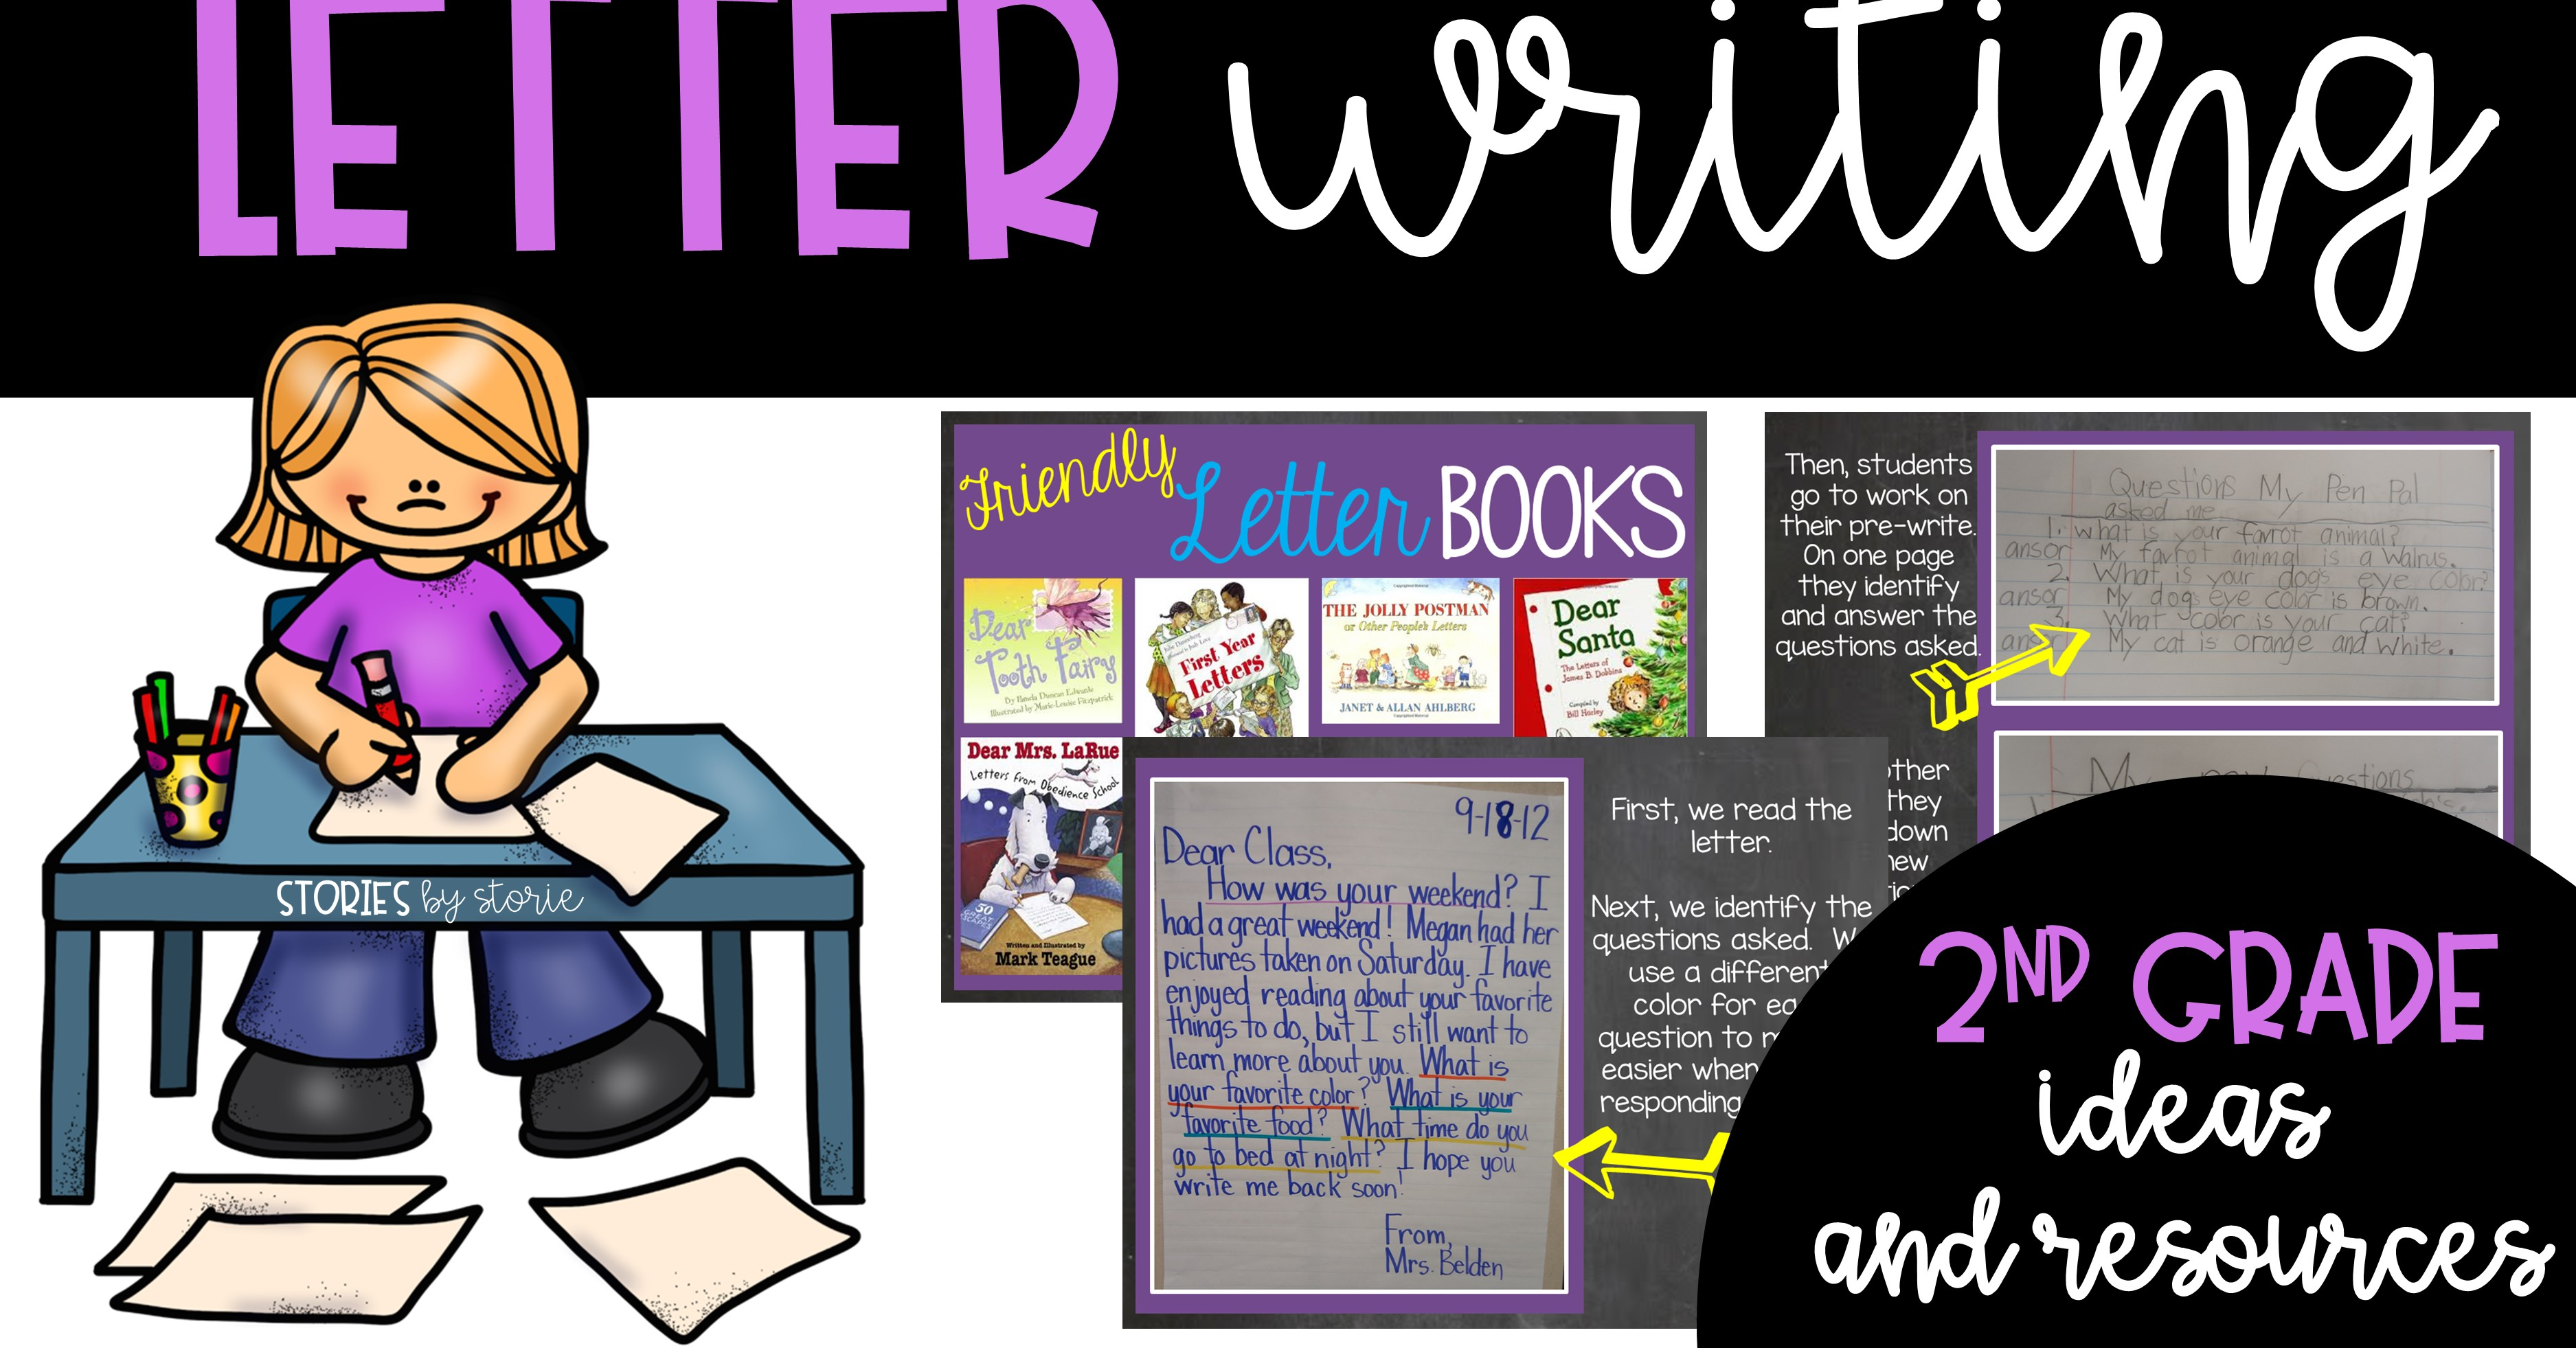 Friendly Letter Writing in 2nd Grade Ideas and Resources